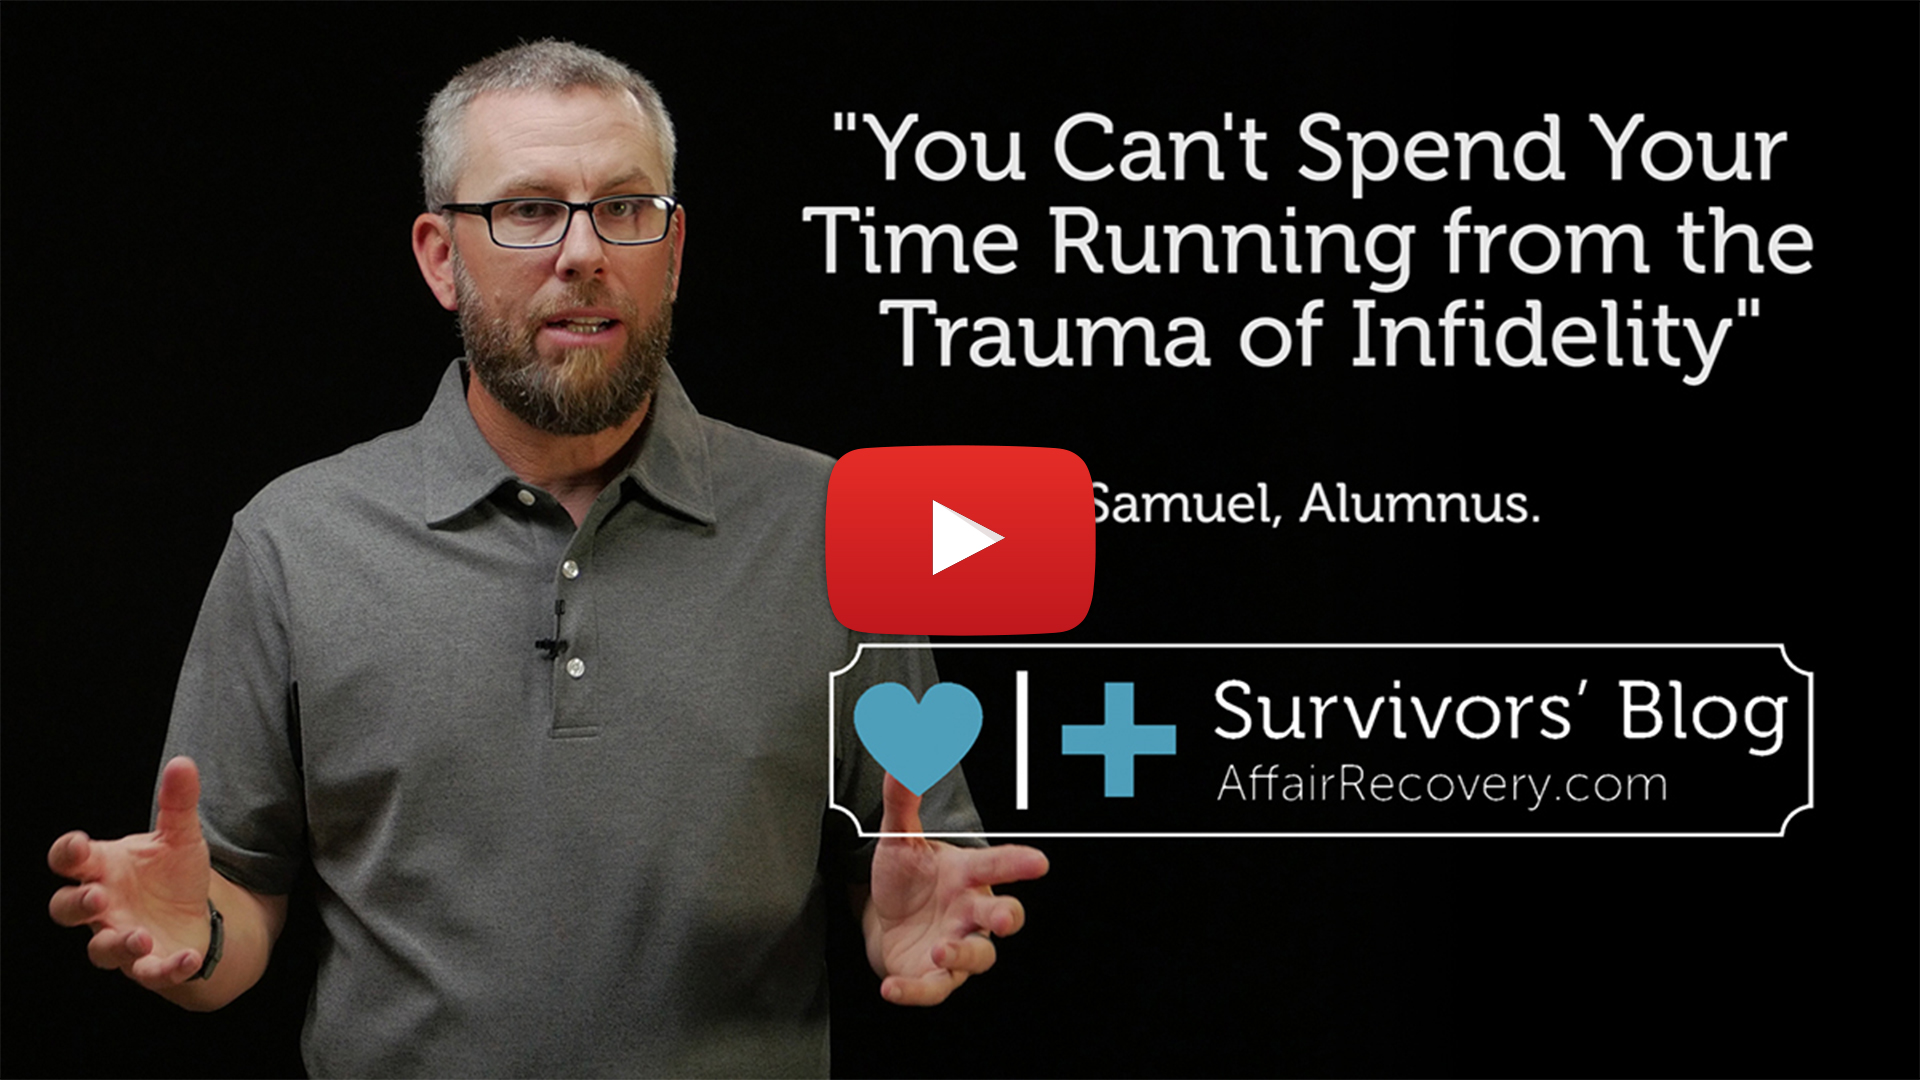 Survivors' Blog - You Can't Spend your Time Running From Trauma After Infidelity